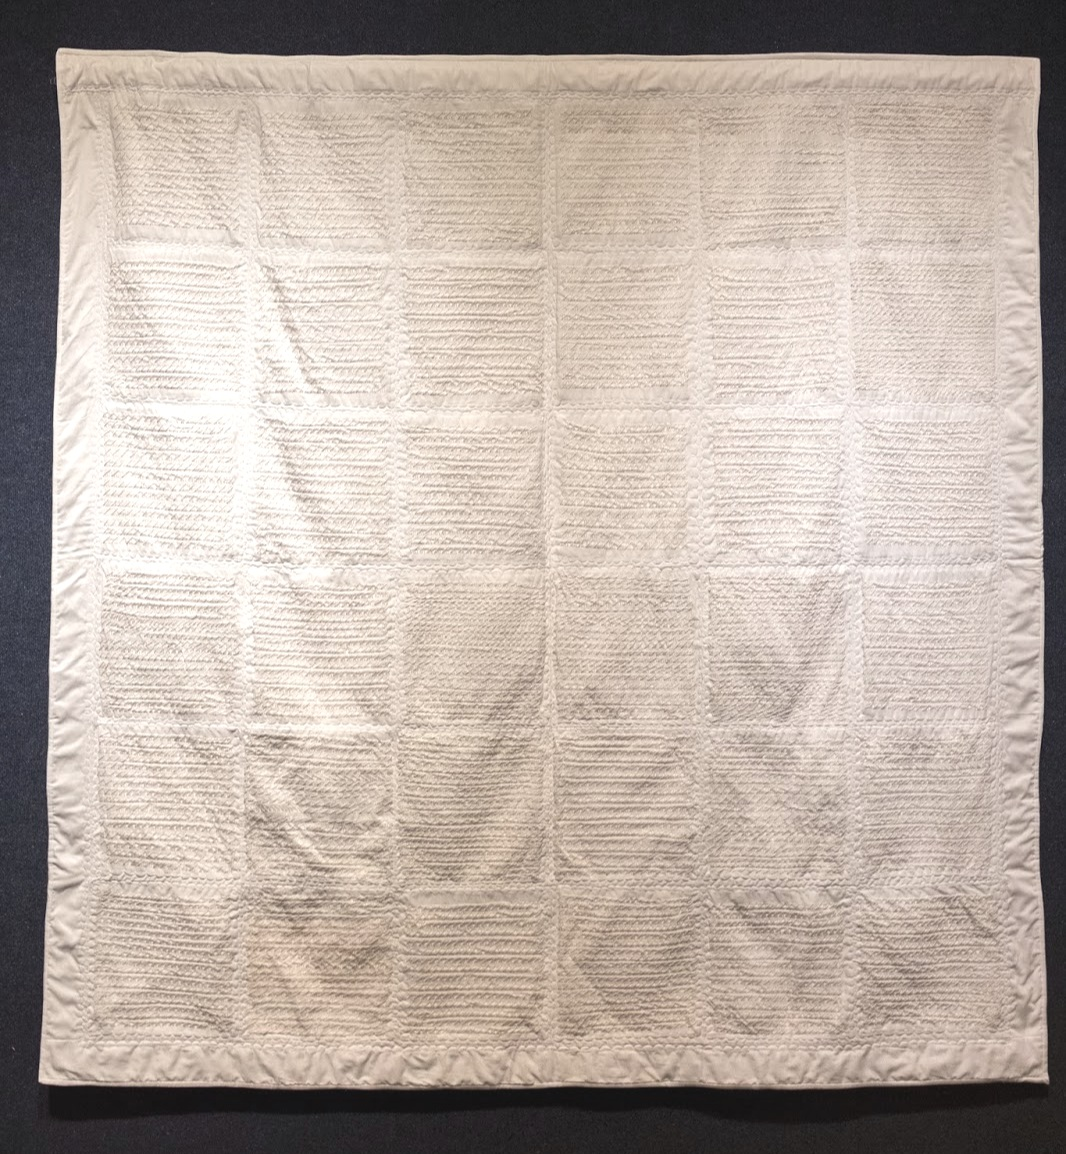 "White tally mark quilt. Crochet thread on white muslin, approximately 75,000 hand stitched tally marks, 72""x 72"""